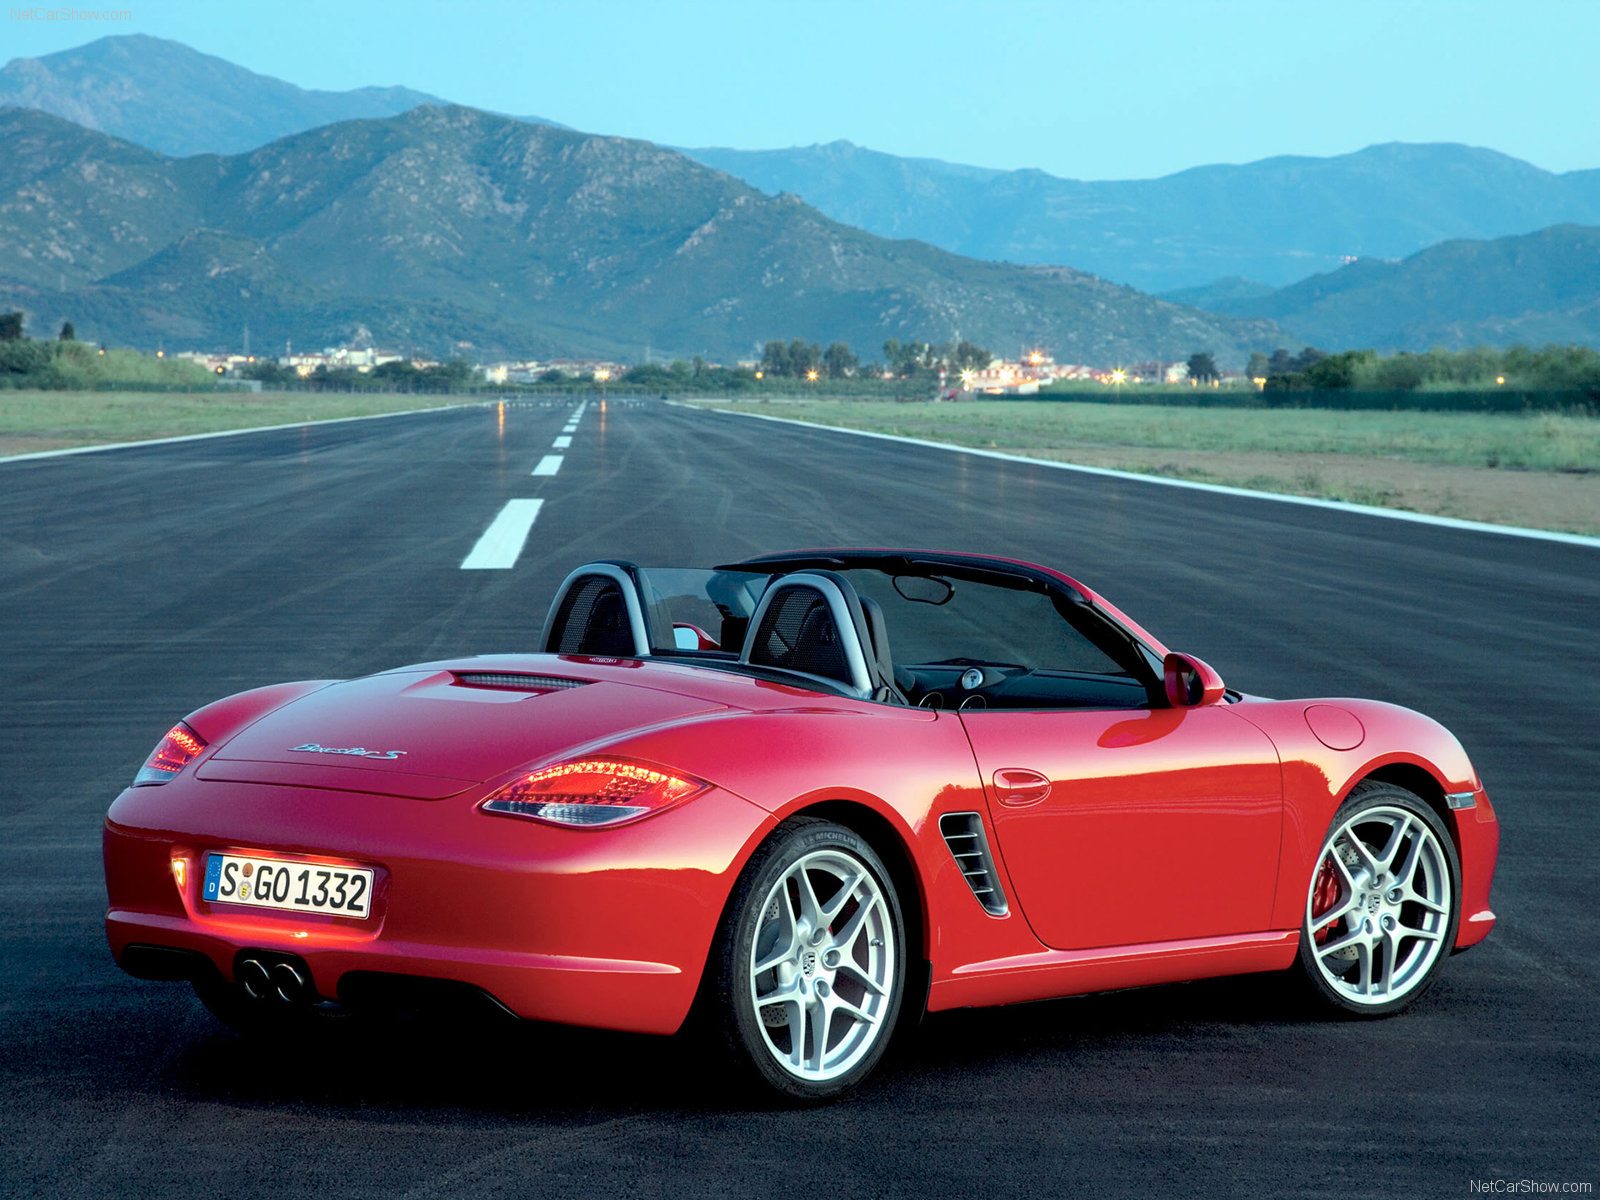 Top Engine Porsche Boxster S Wallpapers